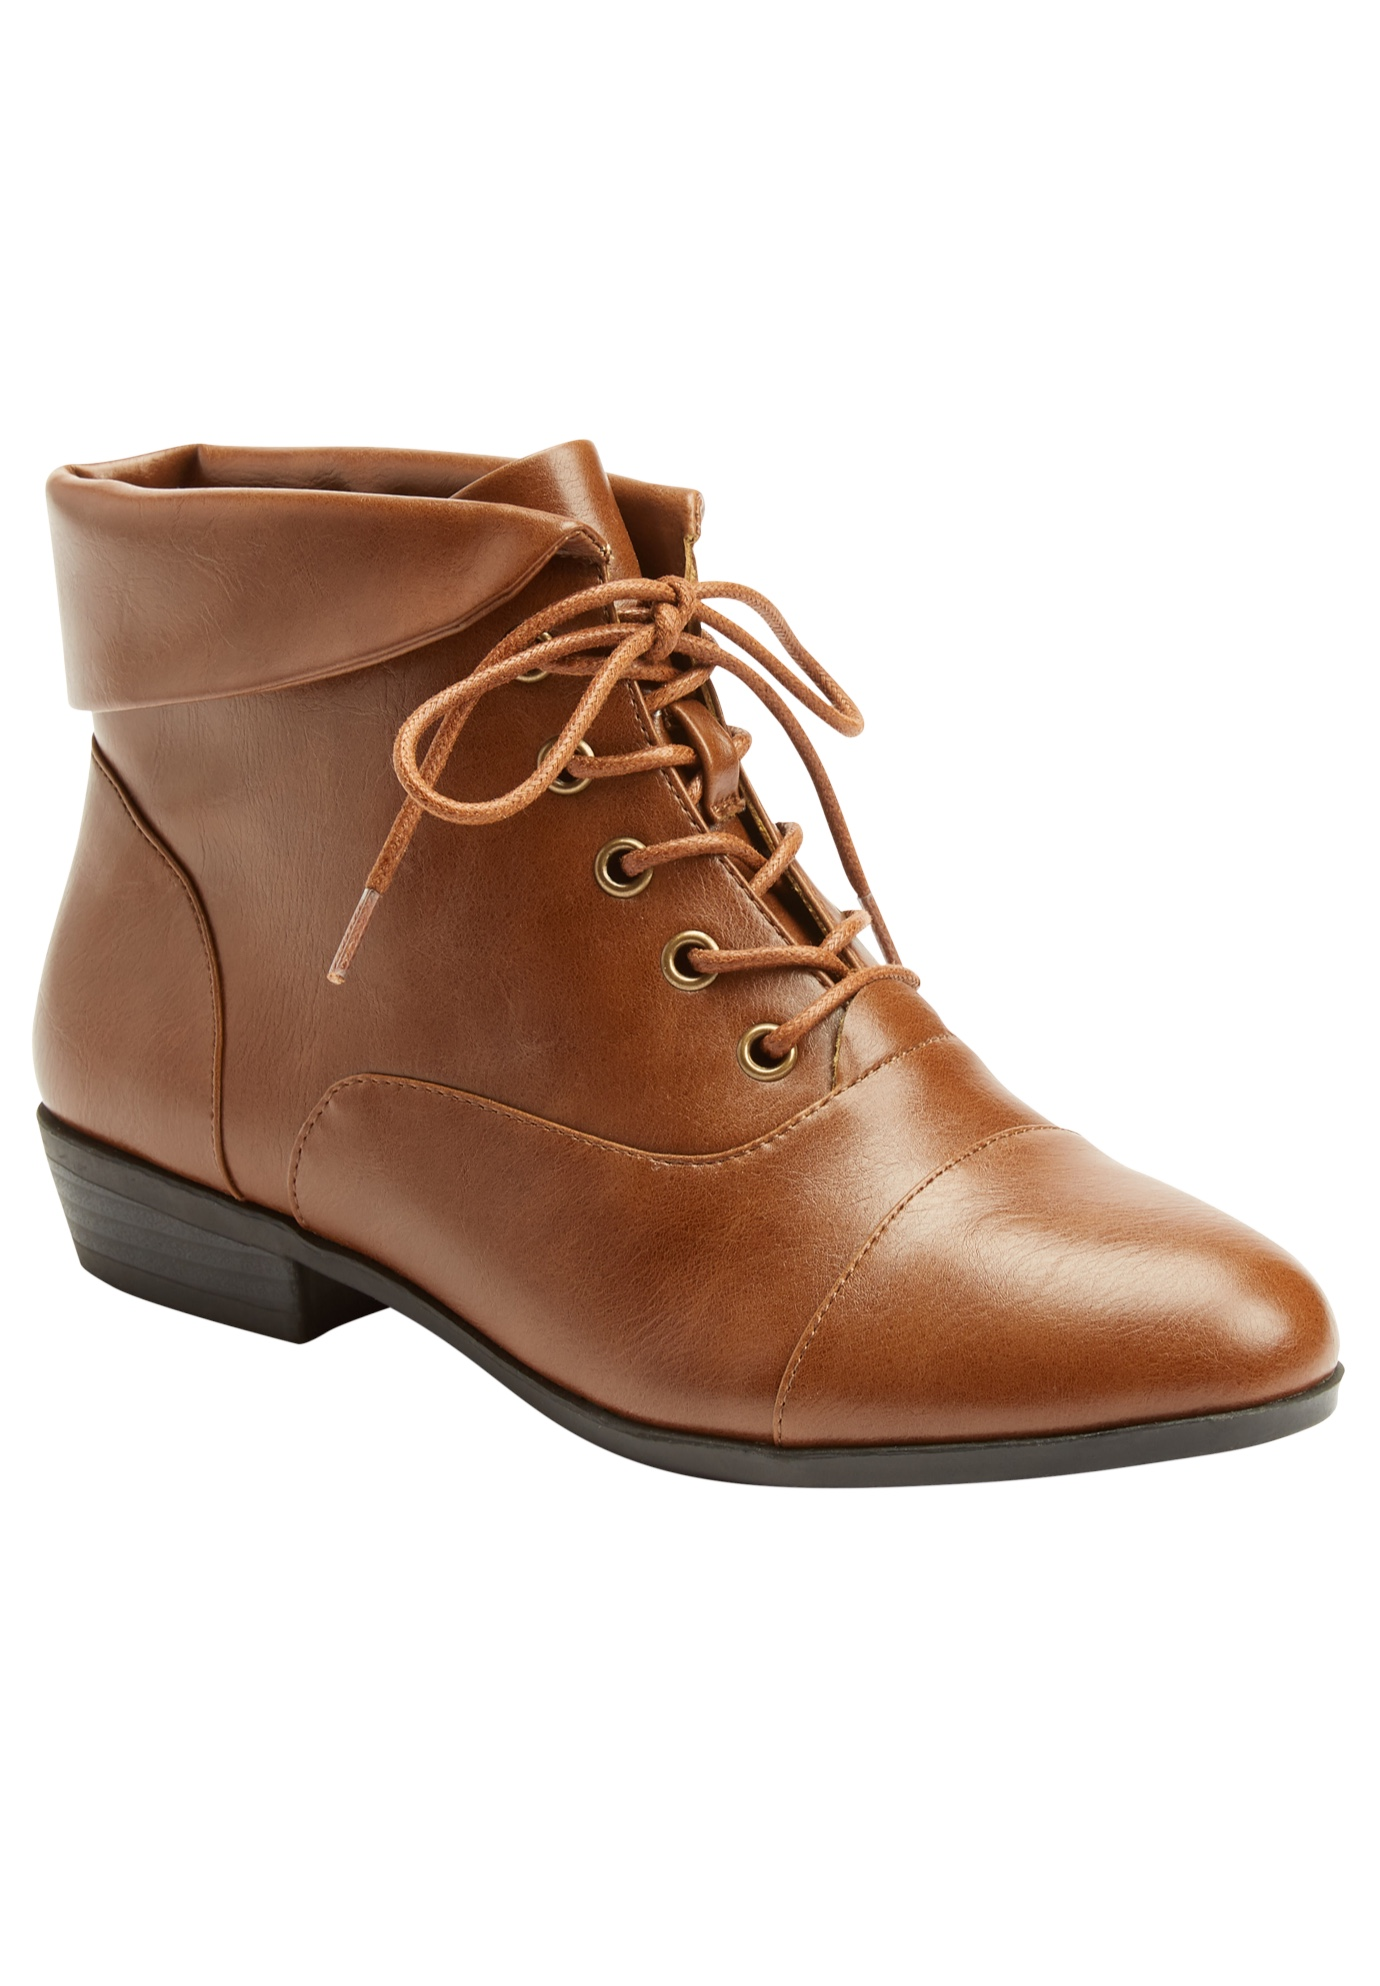 Darcy Bootie Lace Up Ankle Boot